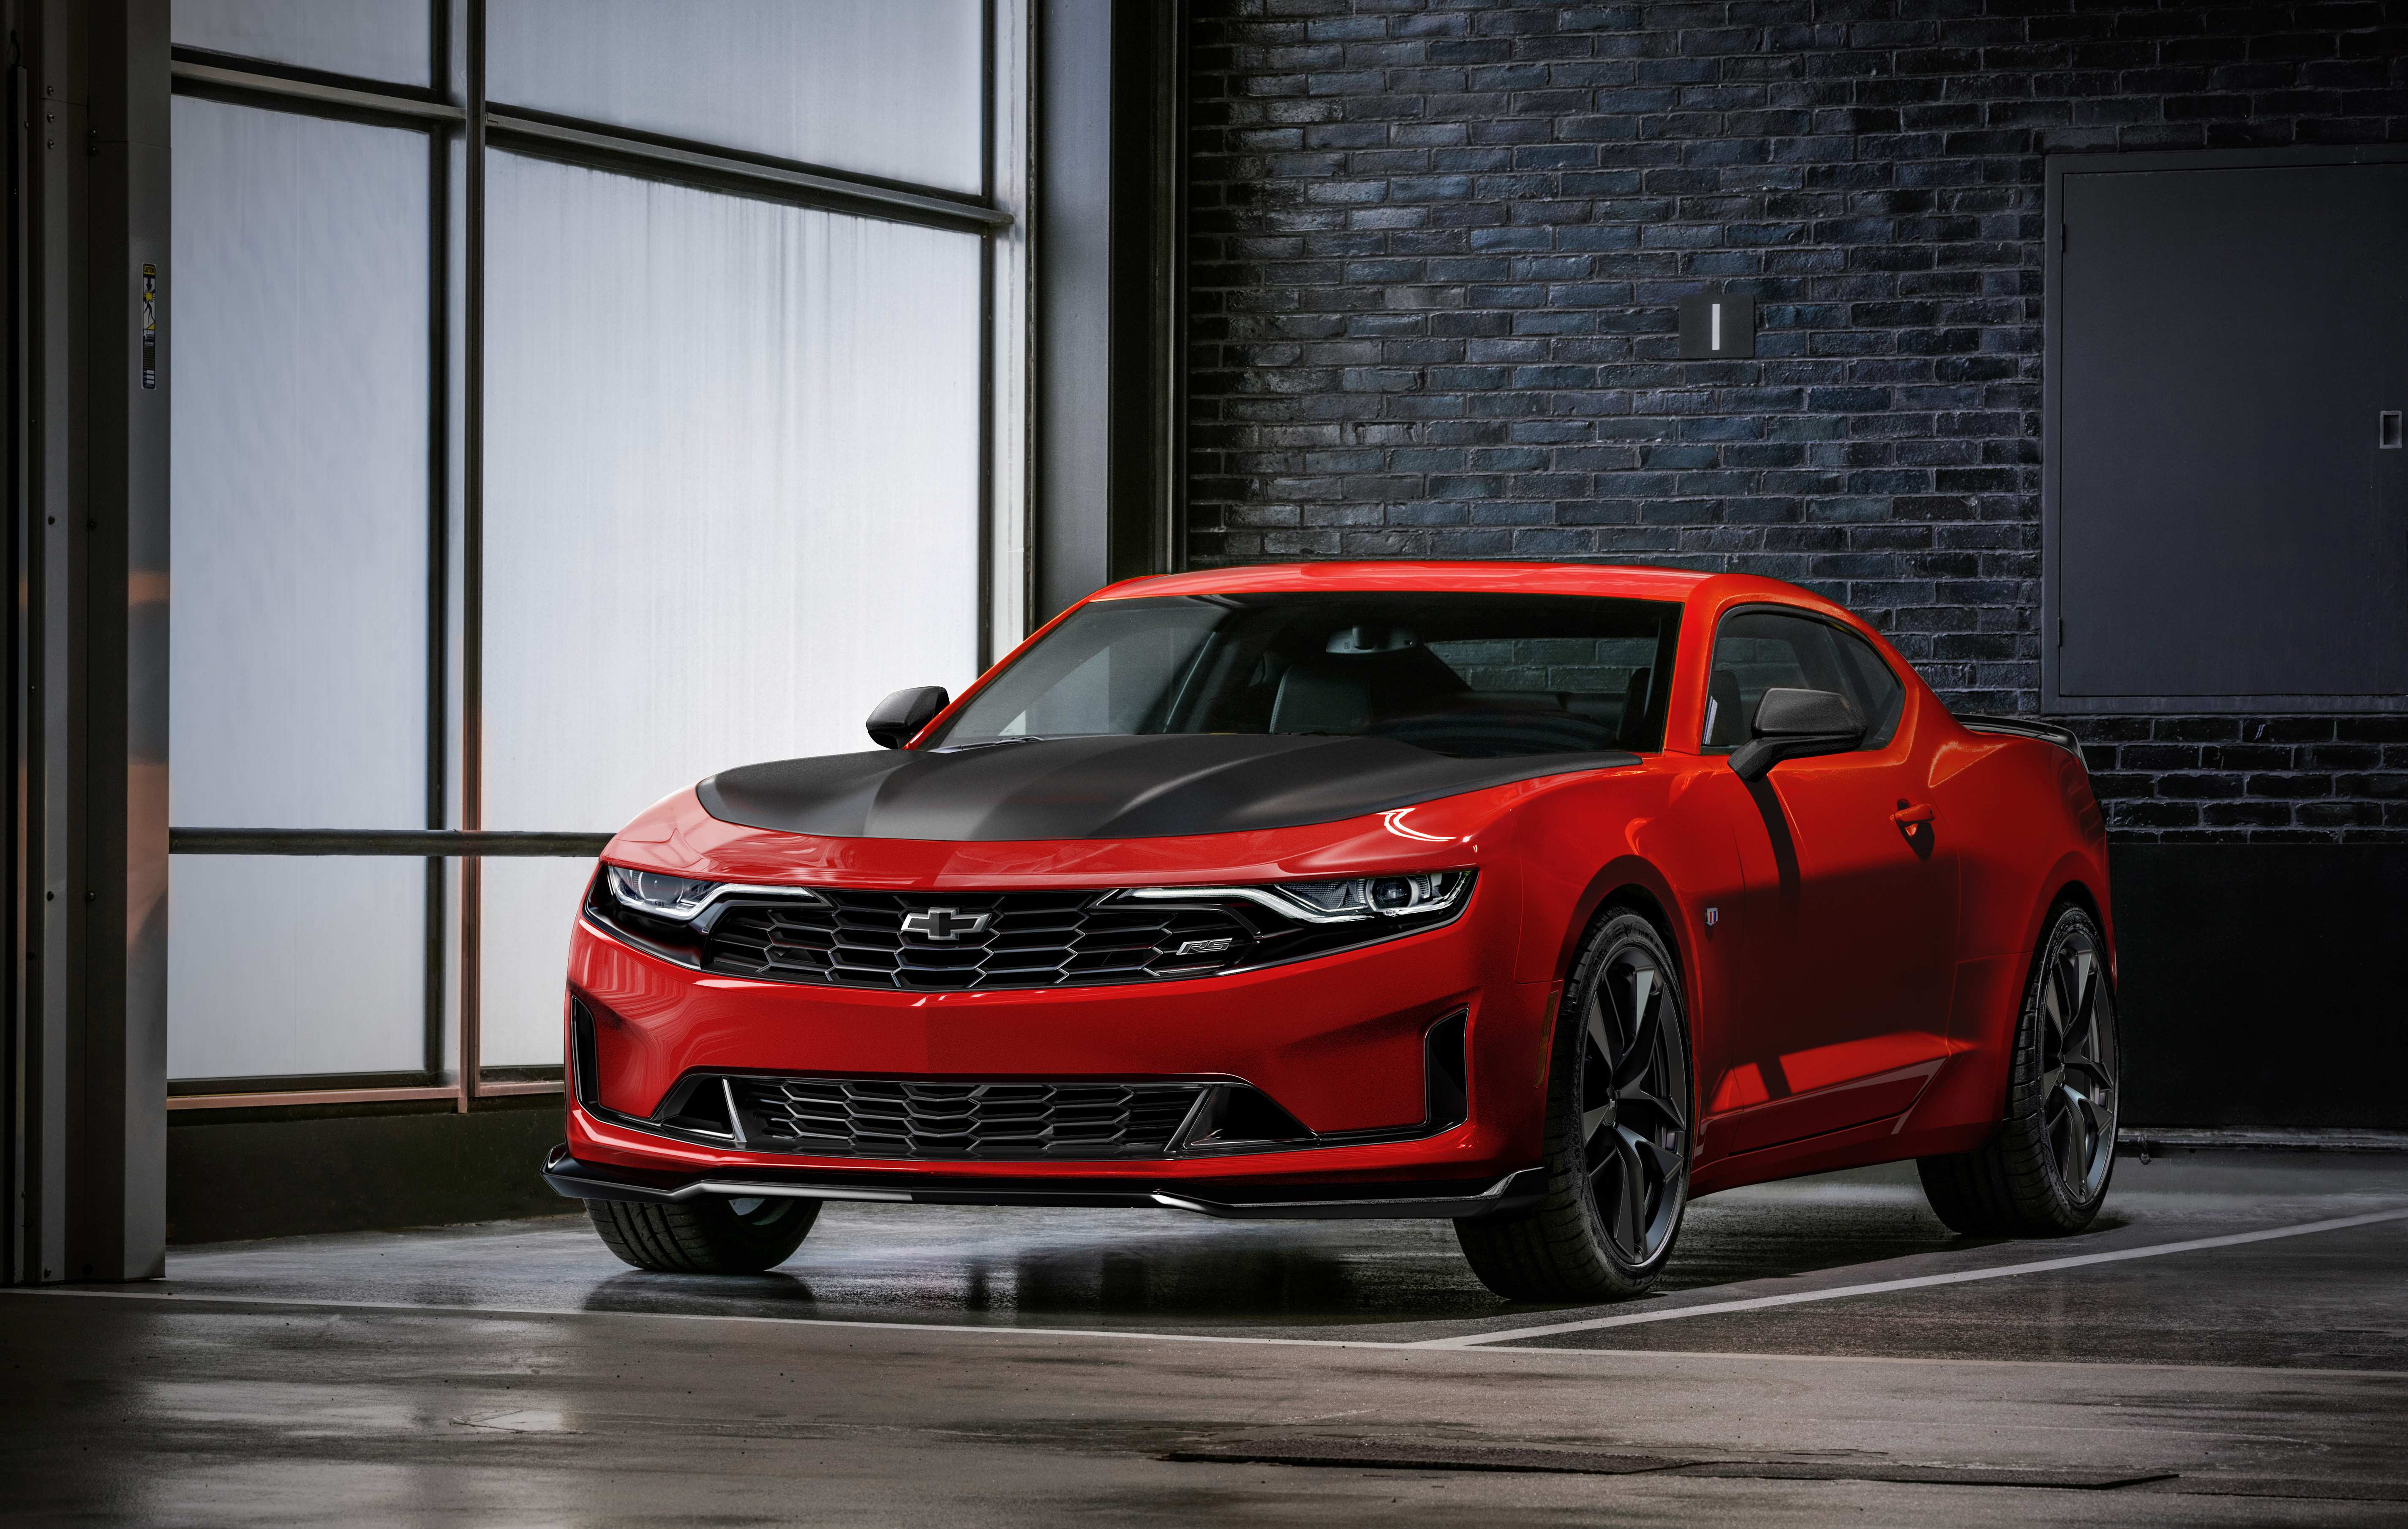 71 All New 2019 Chevy Camaro Competition Arrival Picture with 2019 Chevy Camaro Competition Arrival